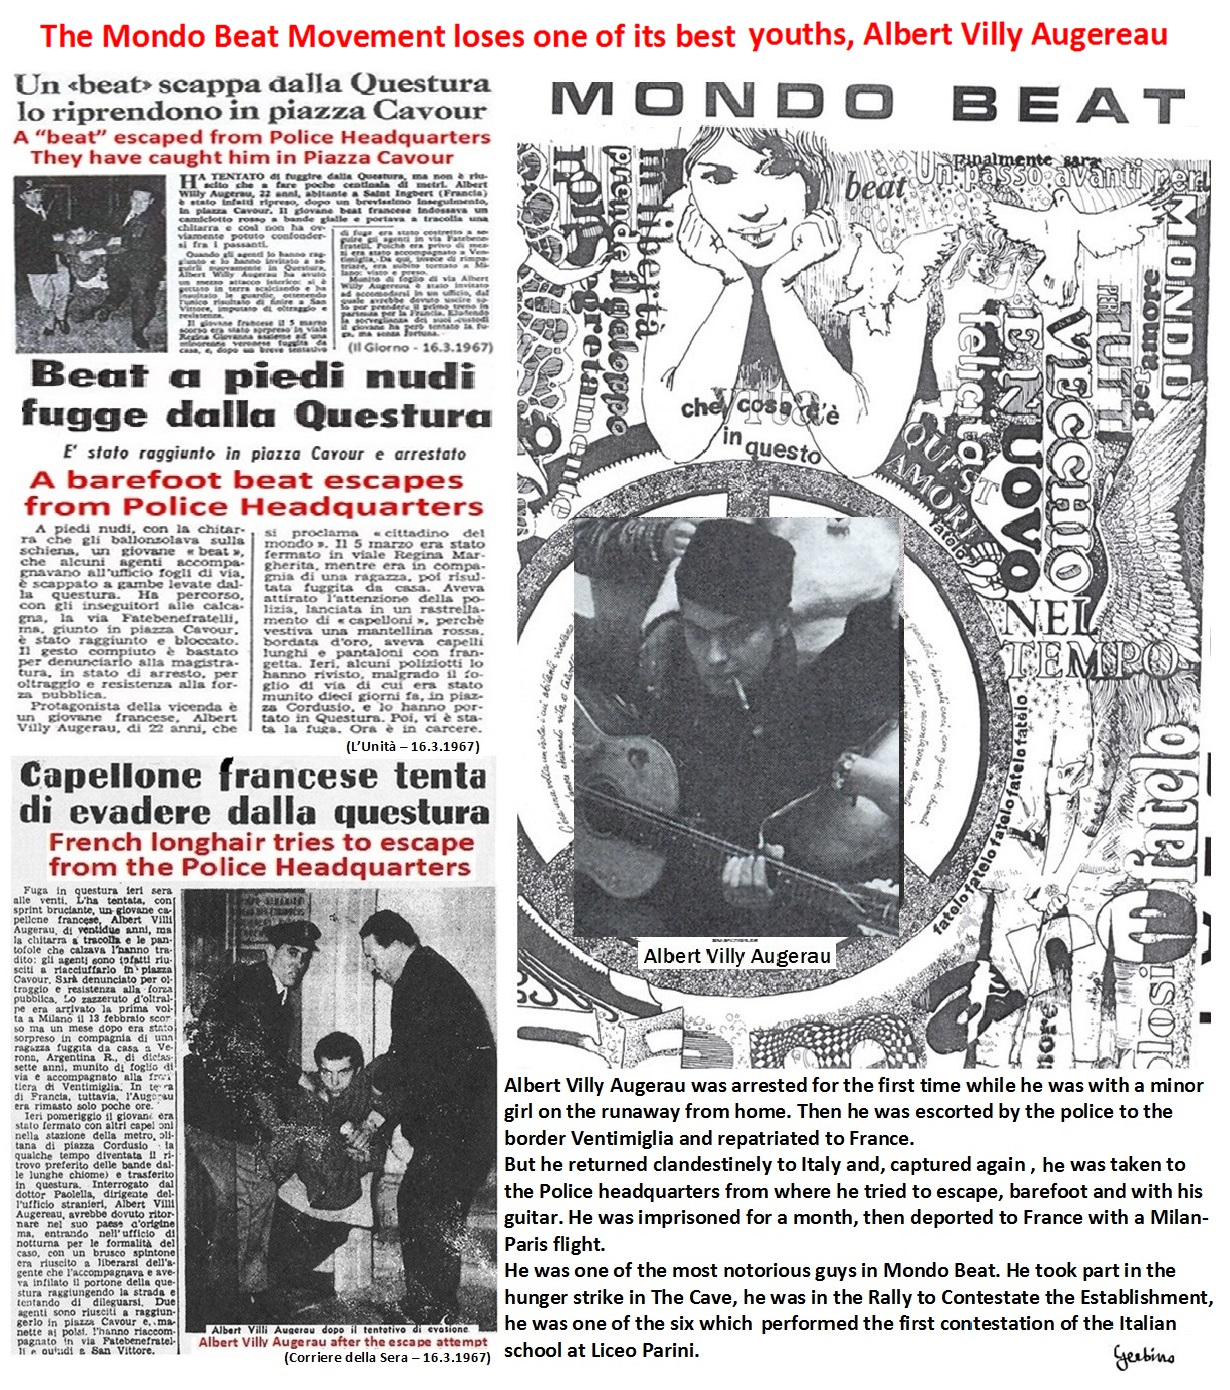 Albert Villy Augerau  was one of the most notorious guys in Mondo Beat